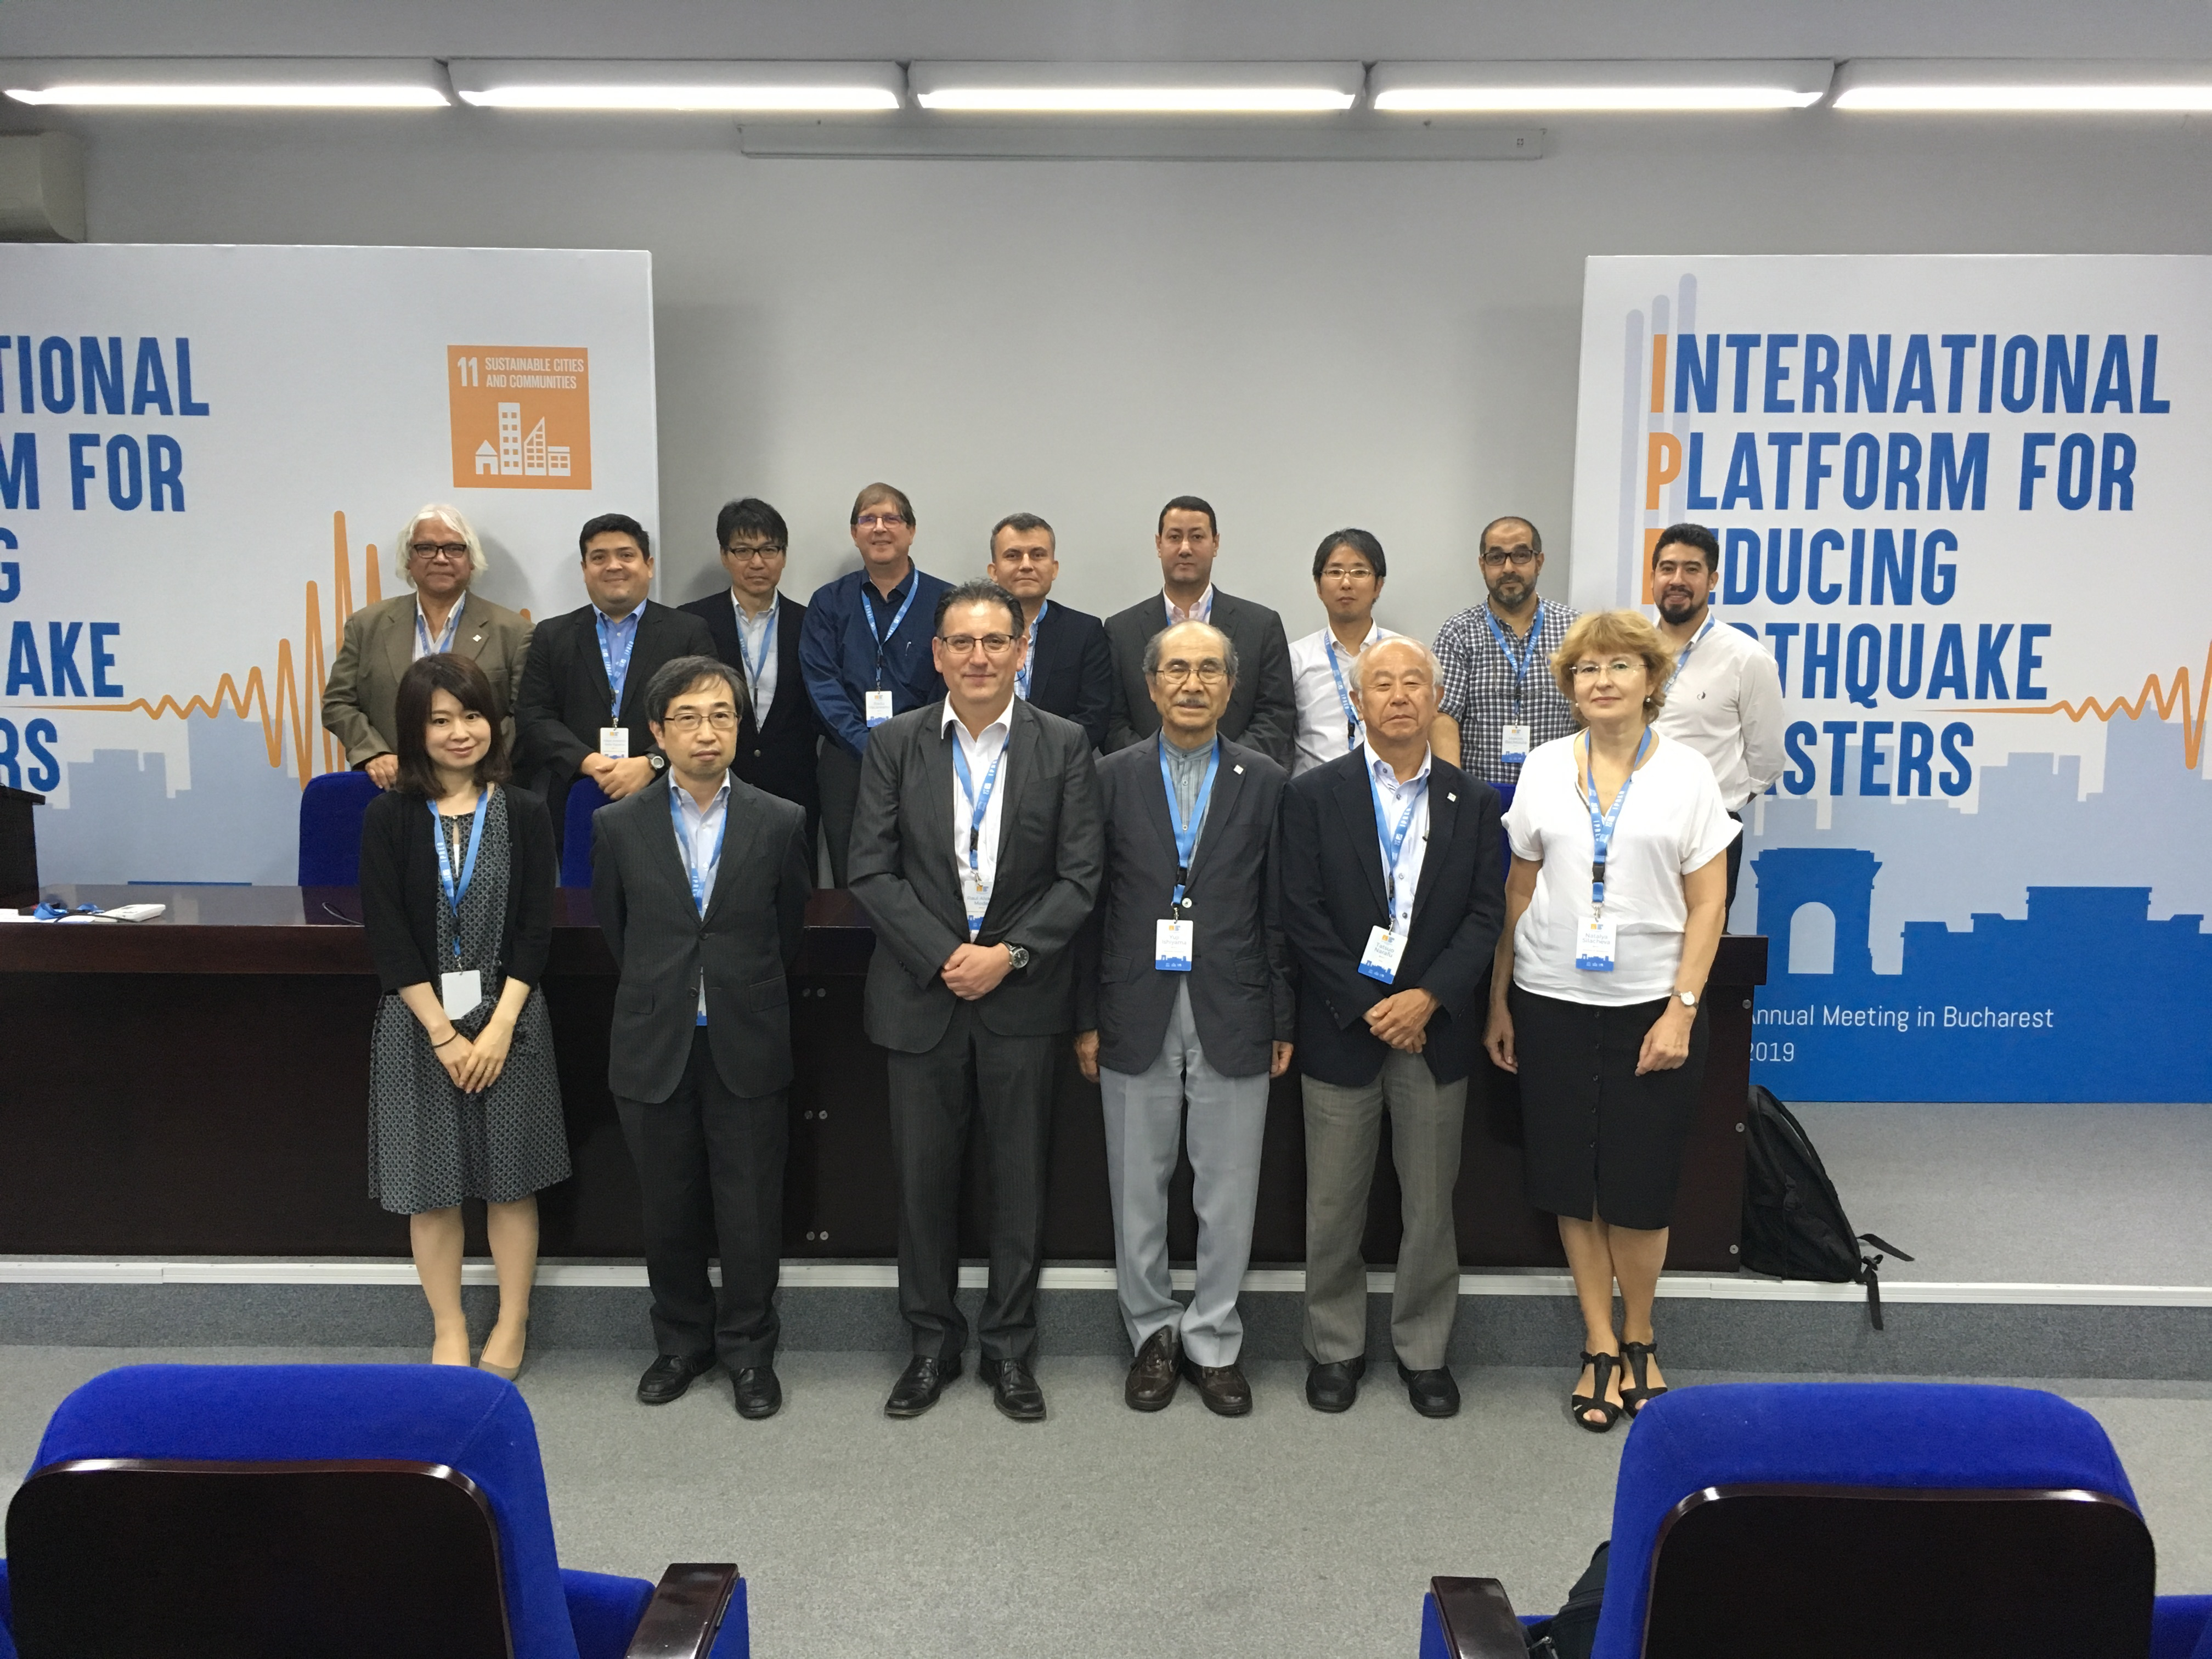 IPRED11 in Bucharest, Rumania, June 2019